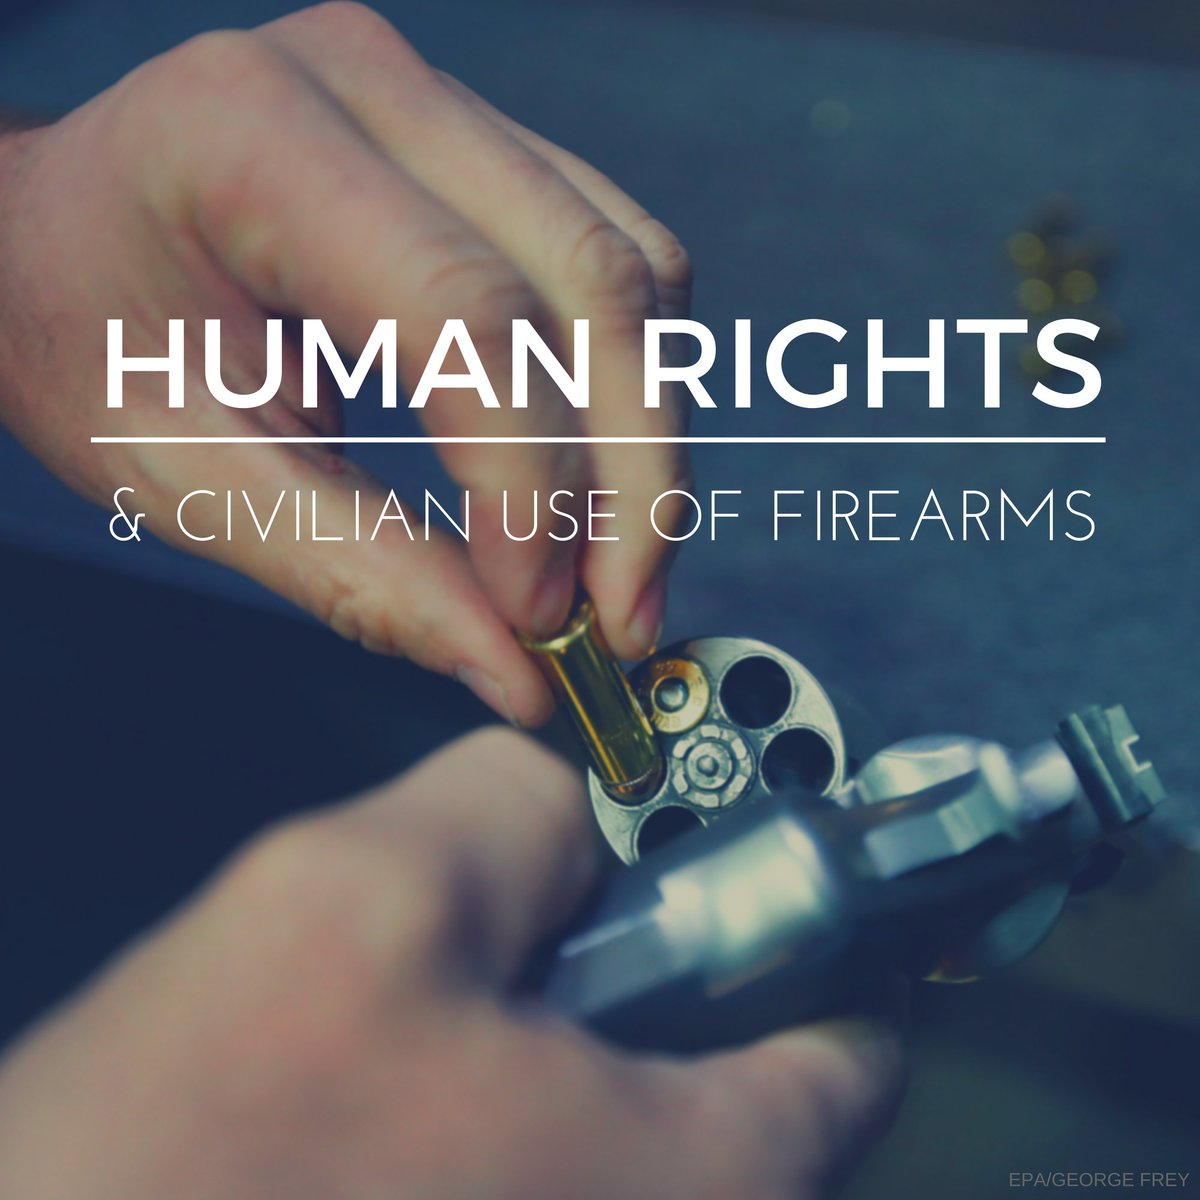 human rights issue Human rights human right's watch is a national organization that investigates and exposes human rights violations around the world and demands that abusers be.